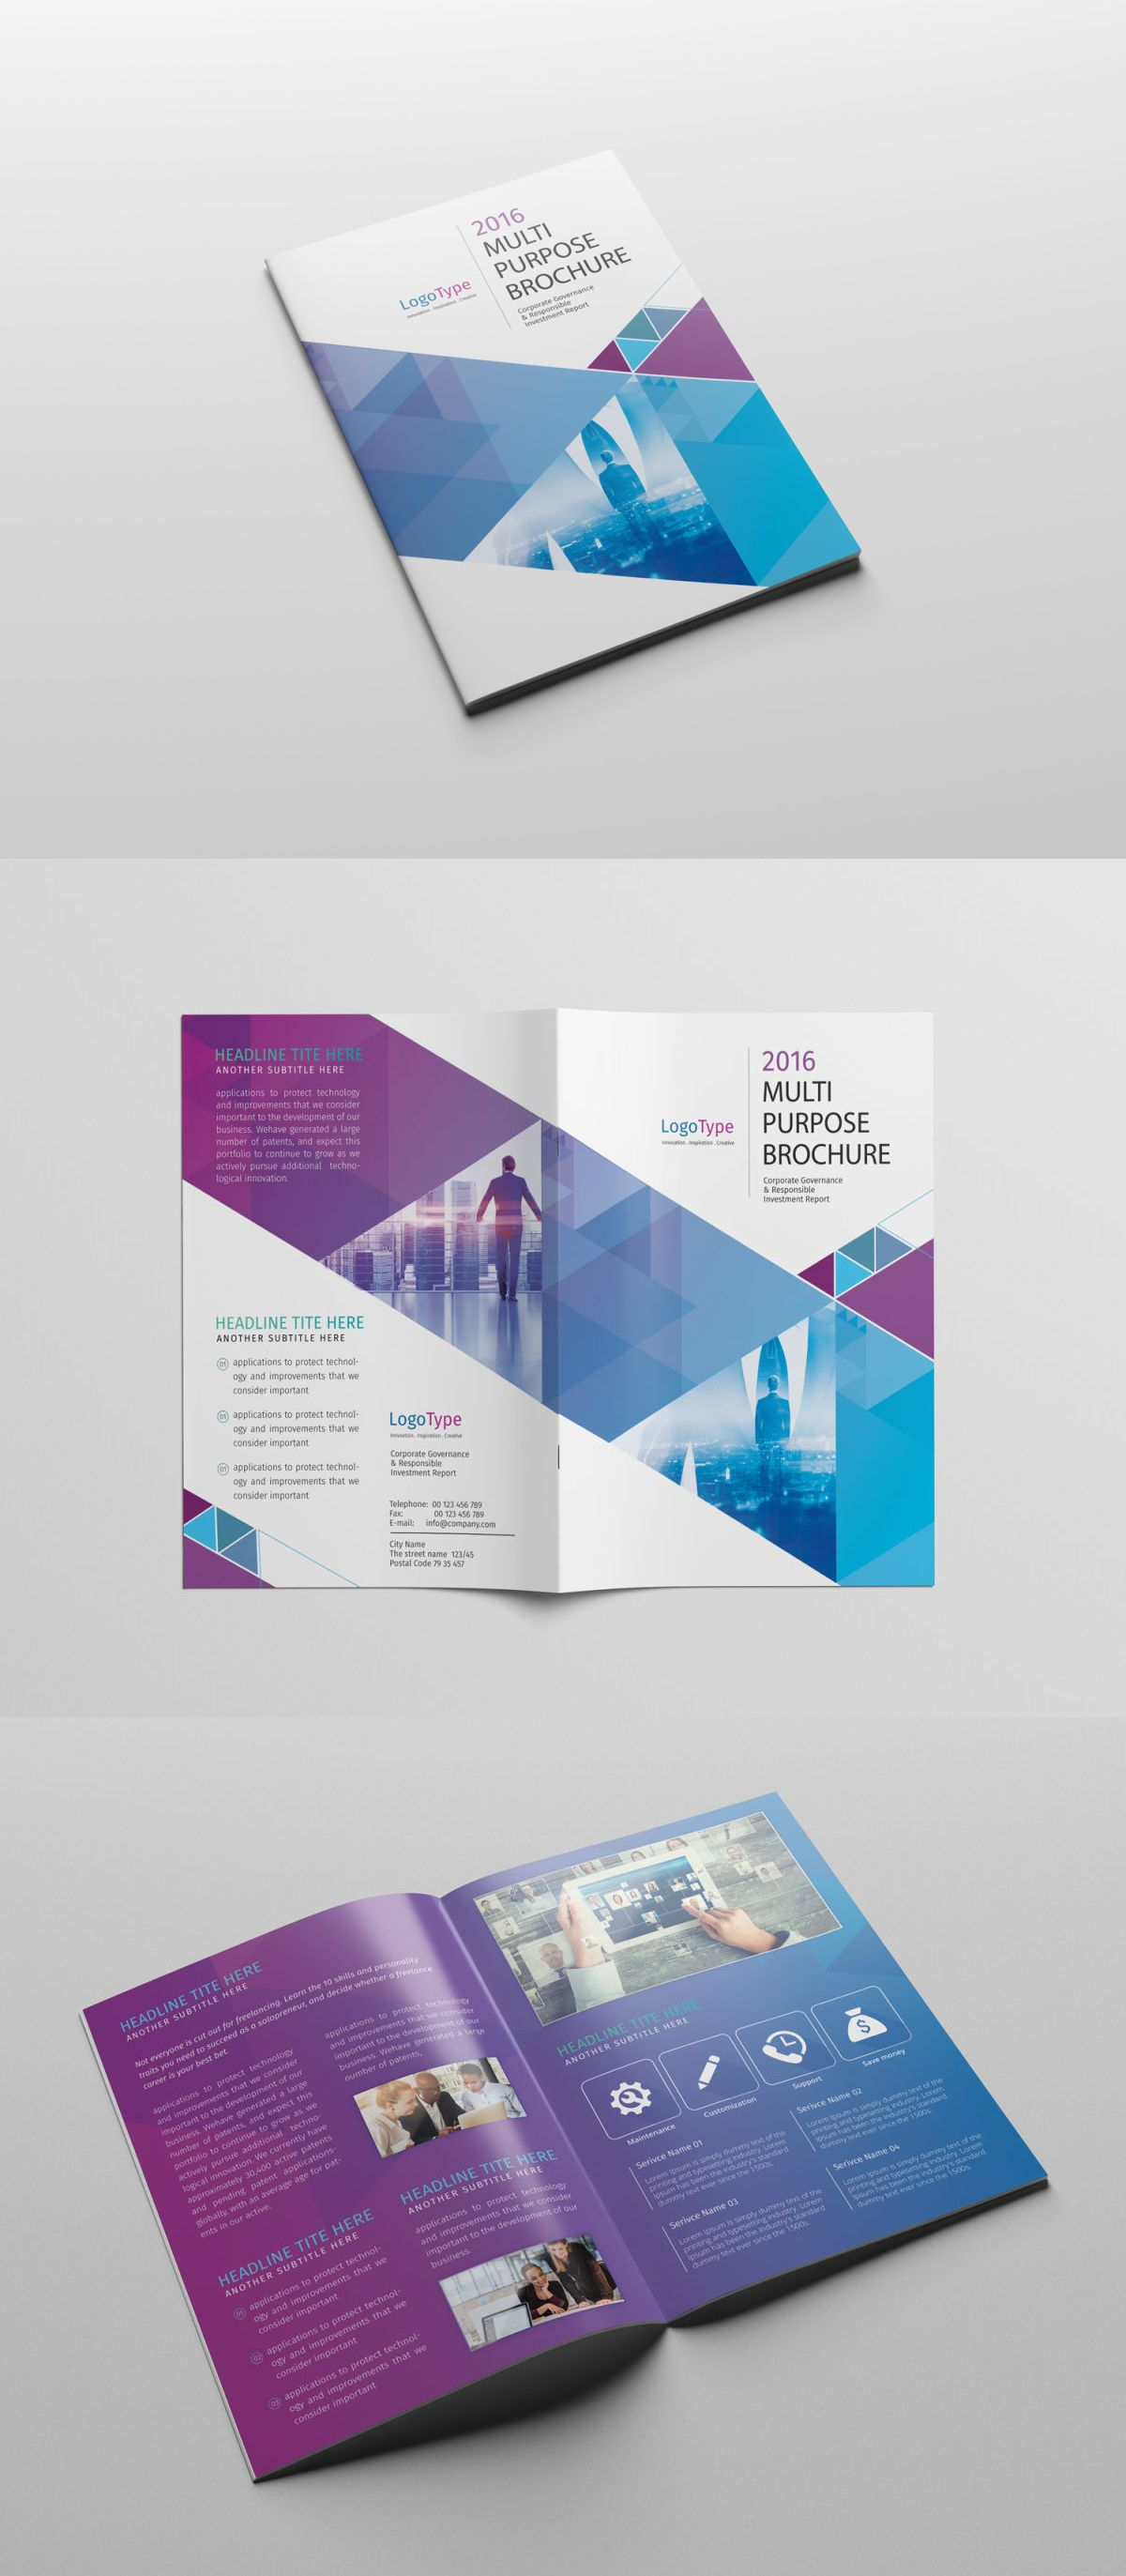 Abstract Bi Fold Brochure 02 By AdobeRashad On Envato Elements